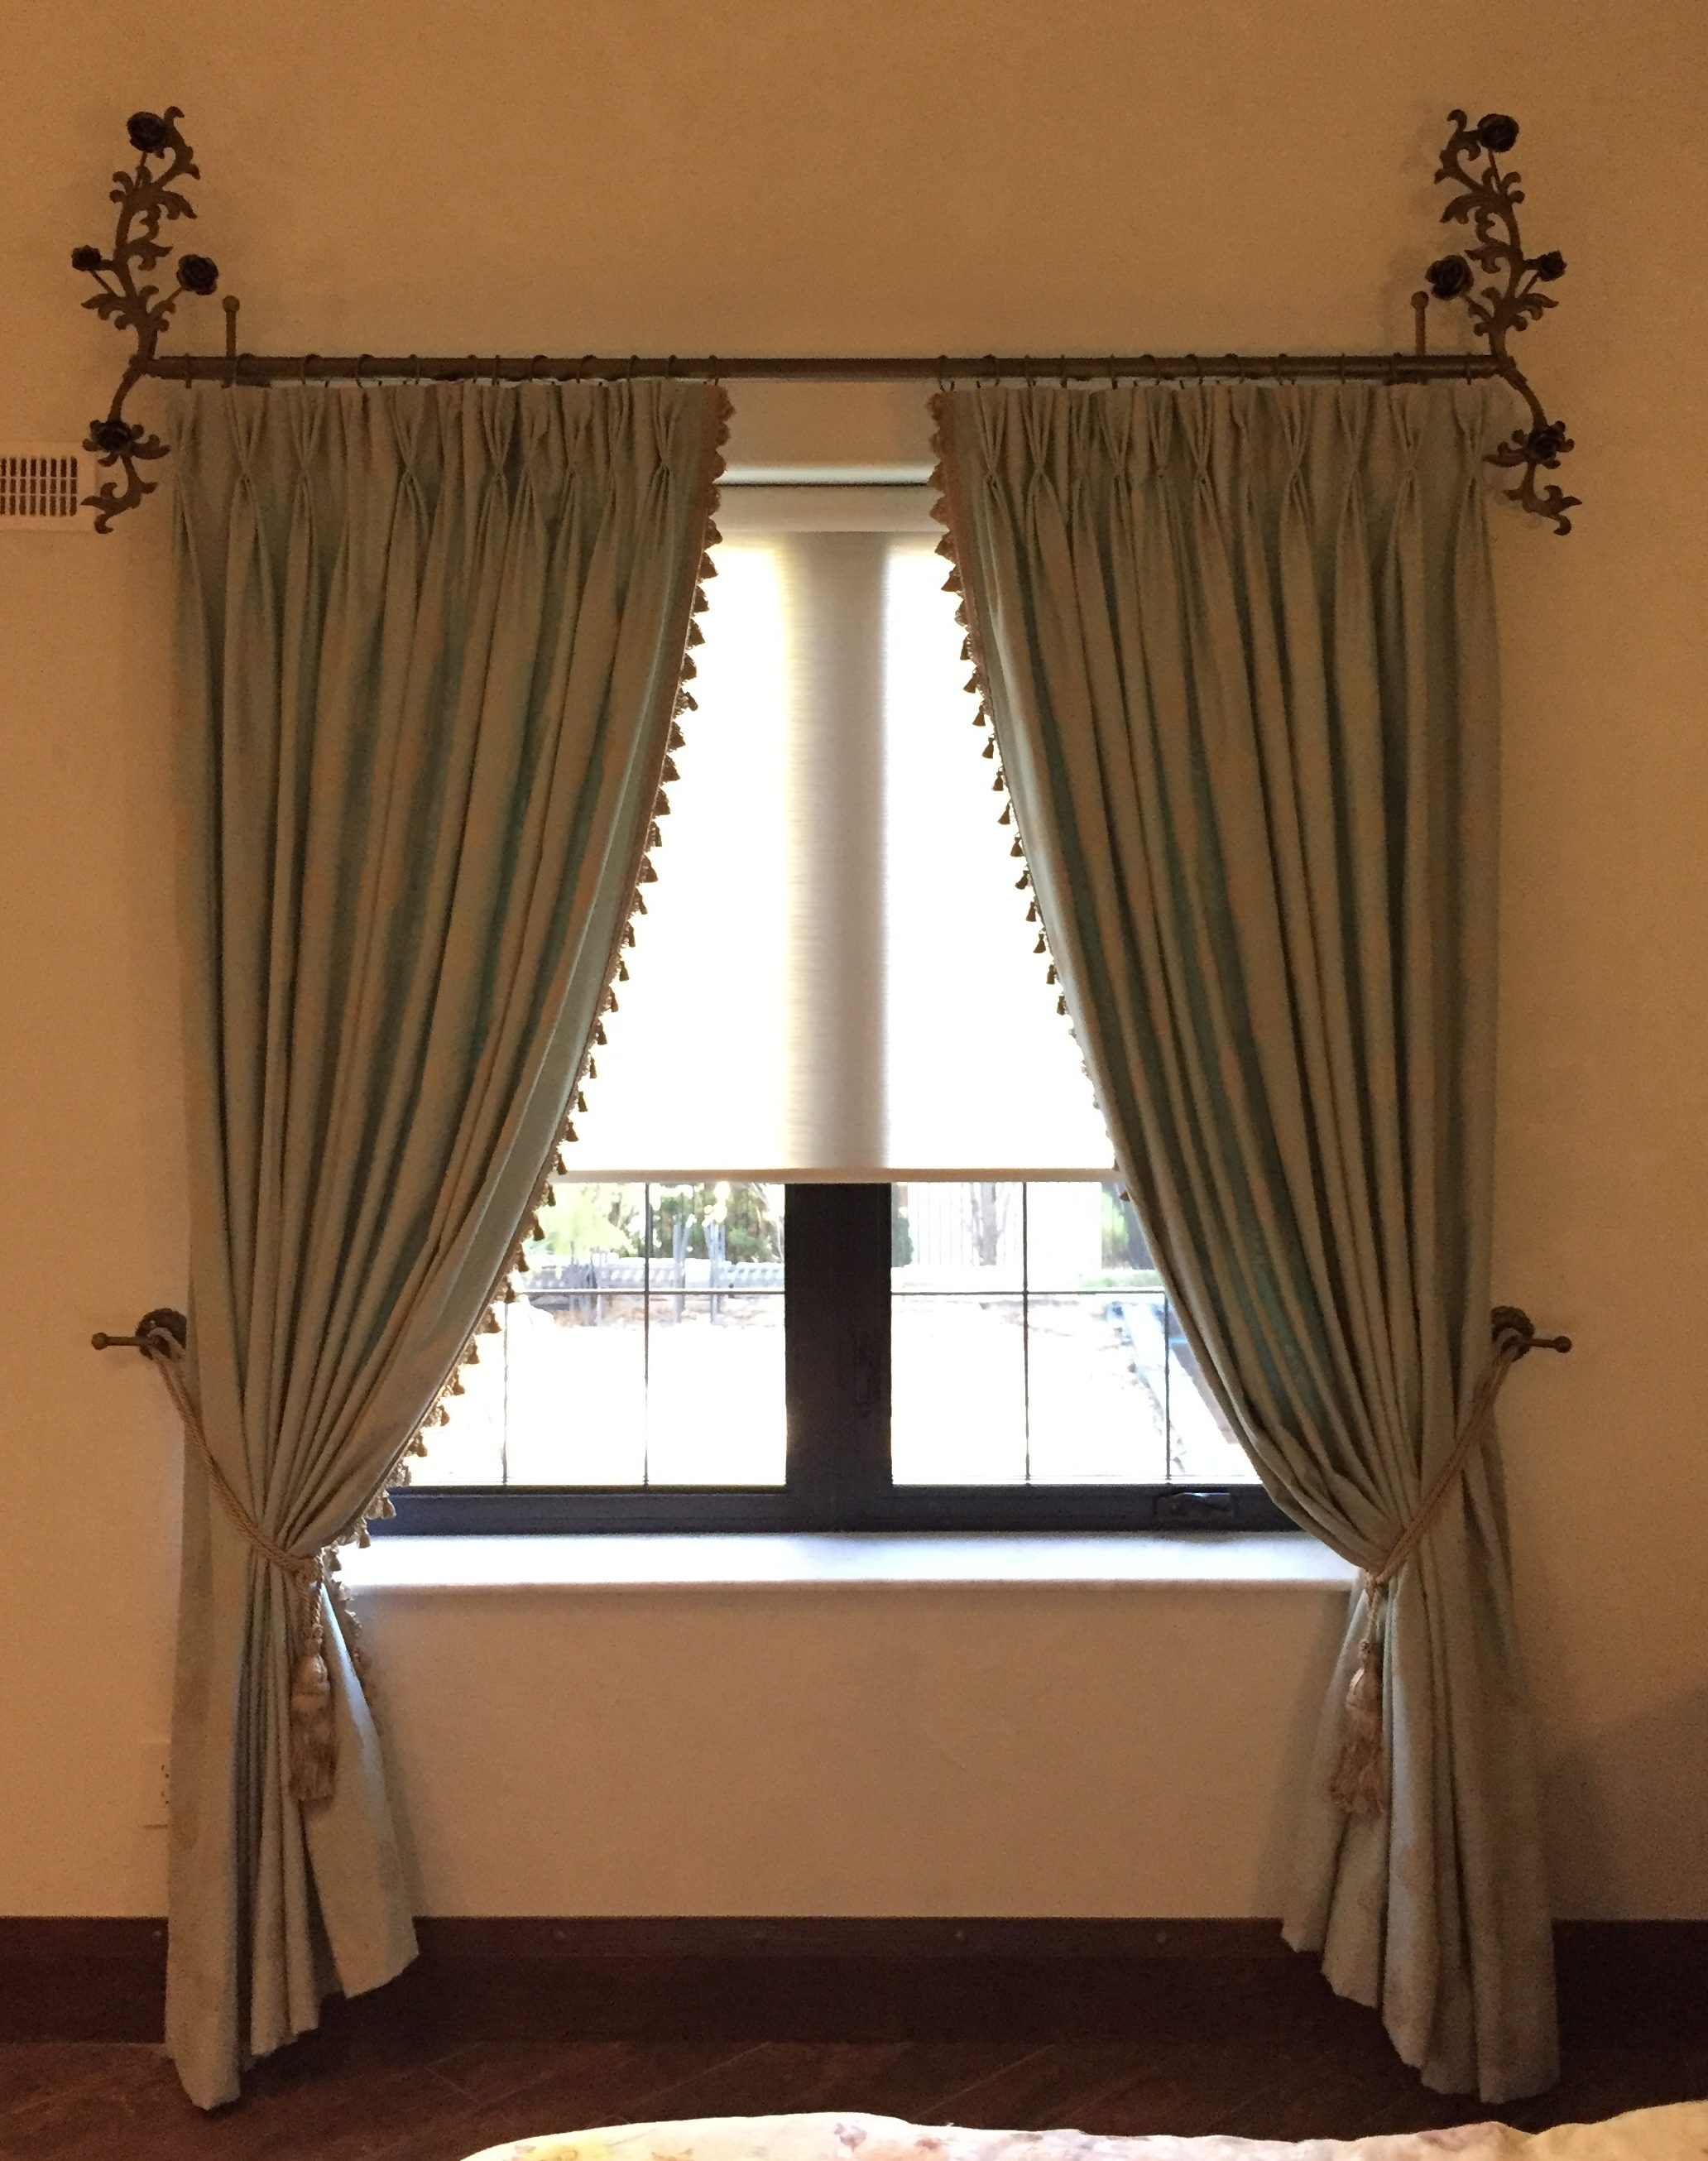 Curtains and Side Panels - Savalan Window Decor for Roller Pleat Curtains  56bof